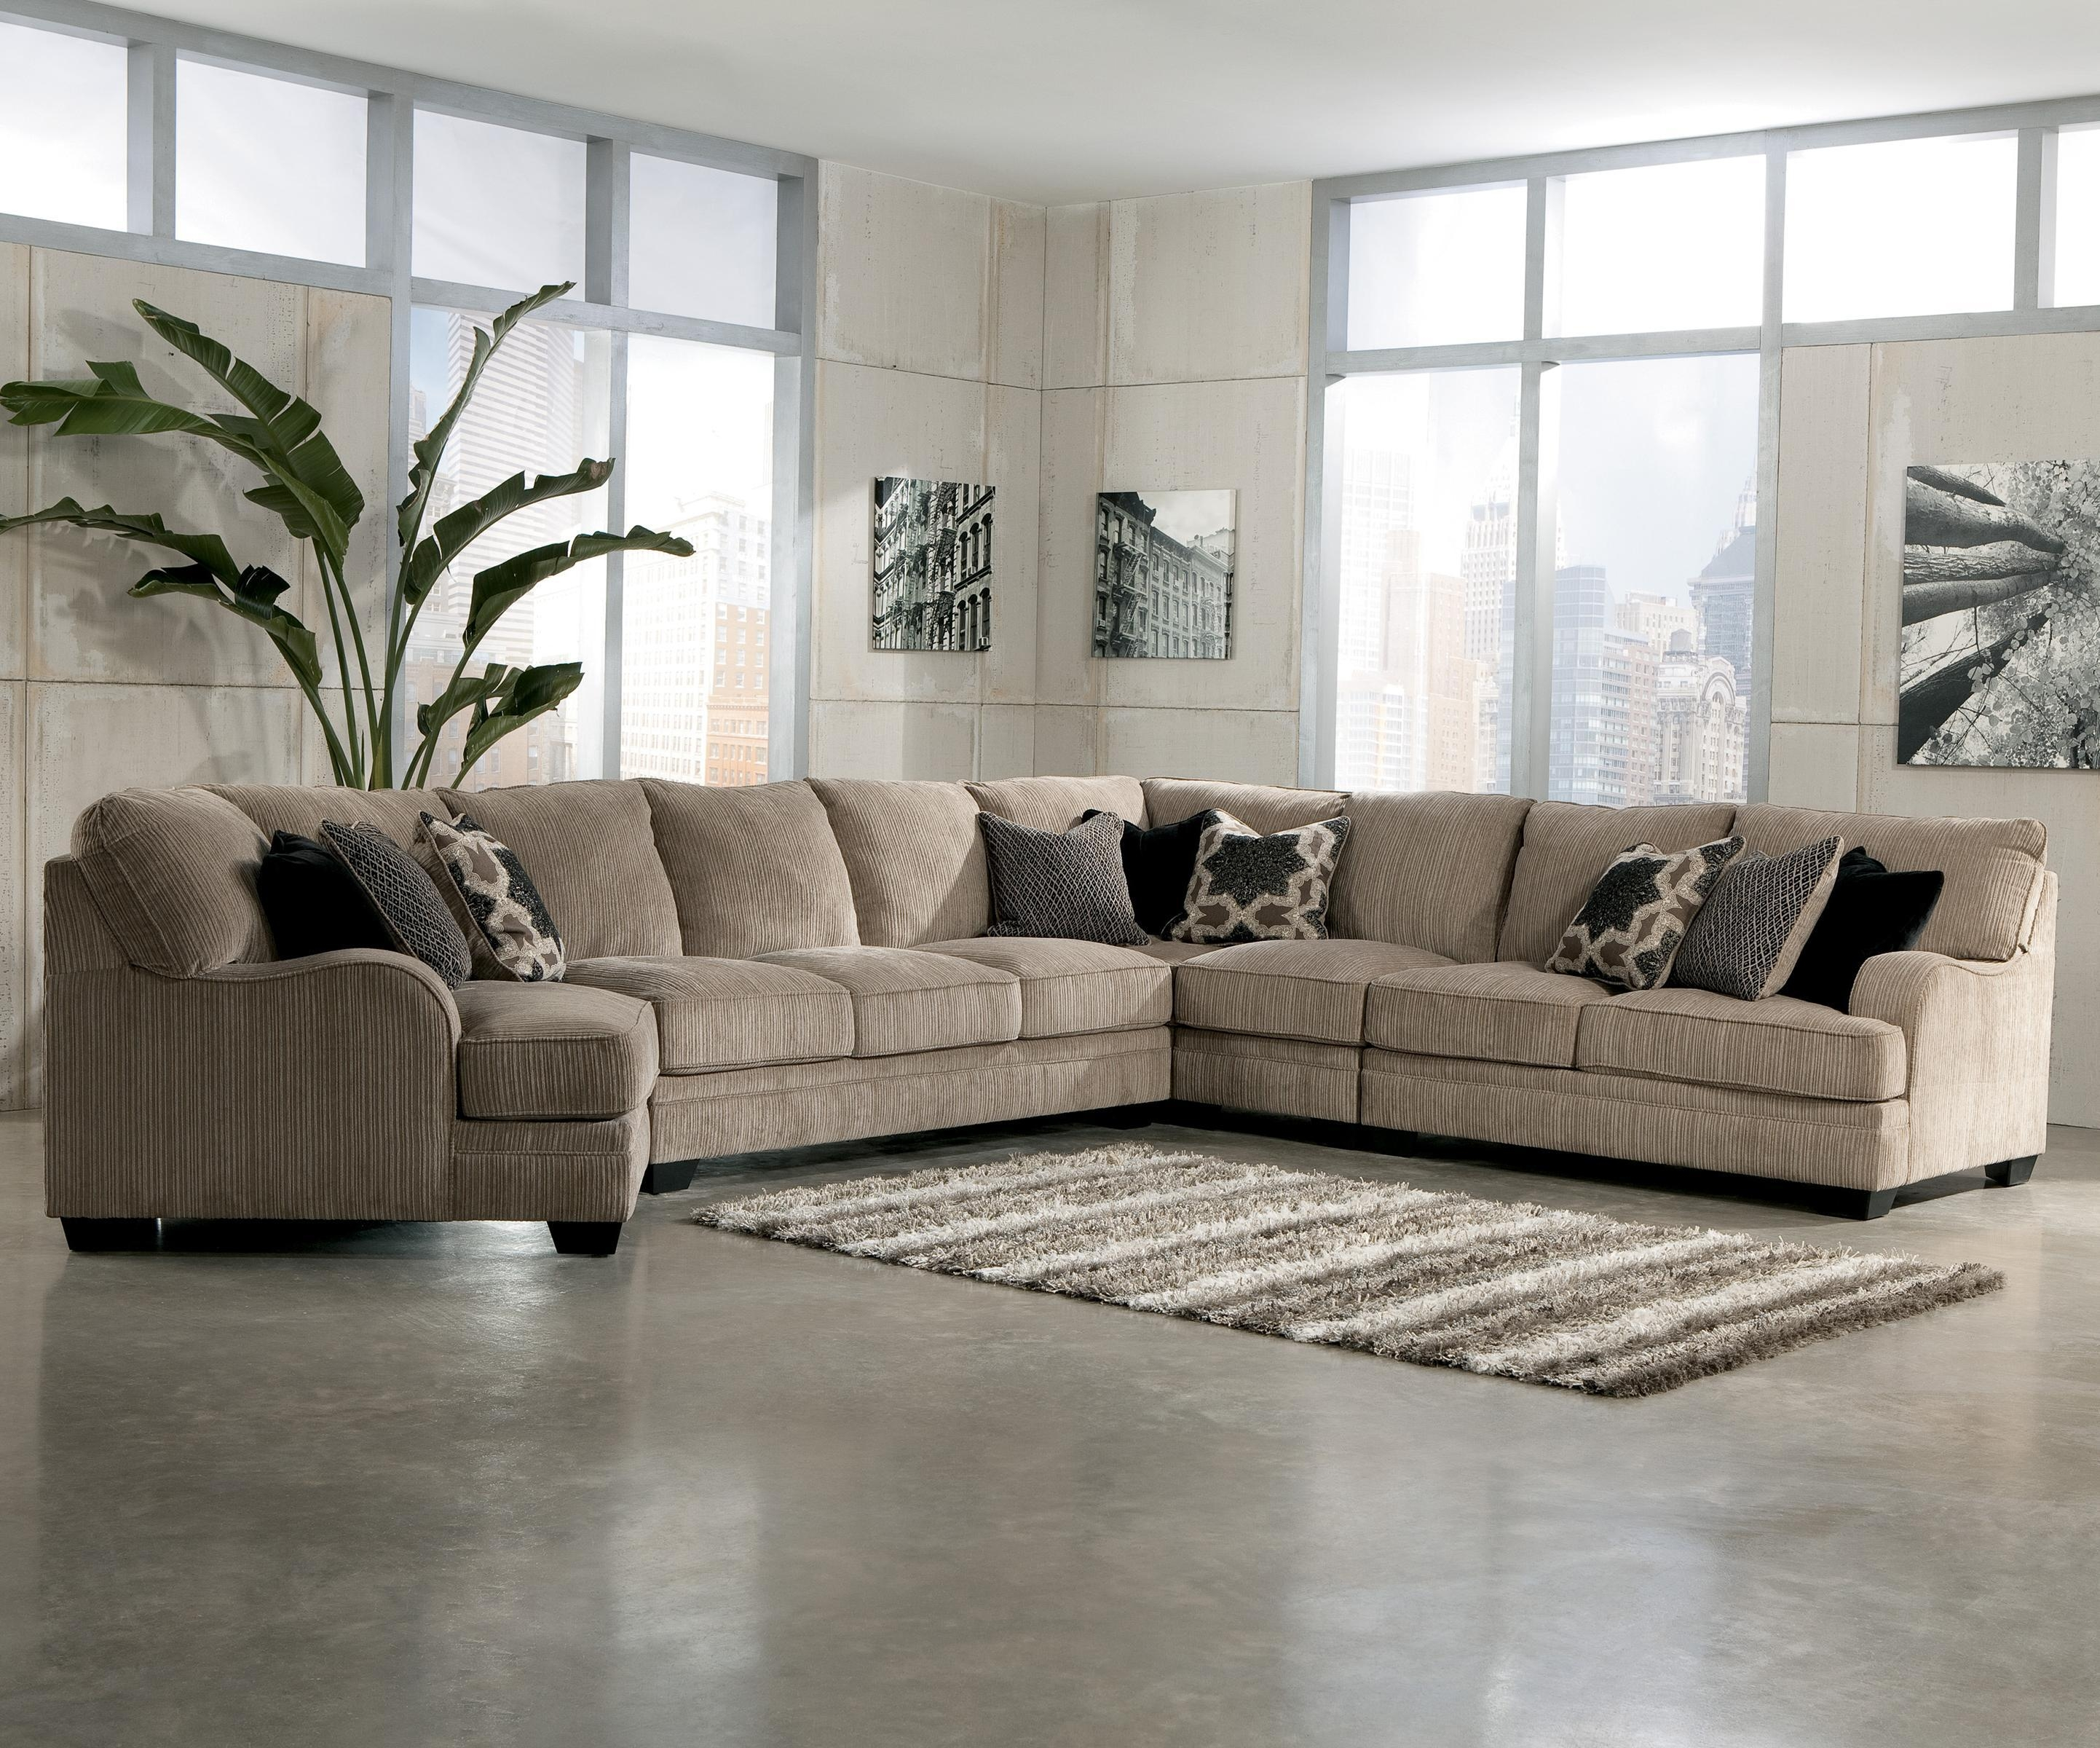 Ashley Furniture Sectional Couches (Image 1 of 20)